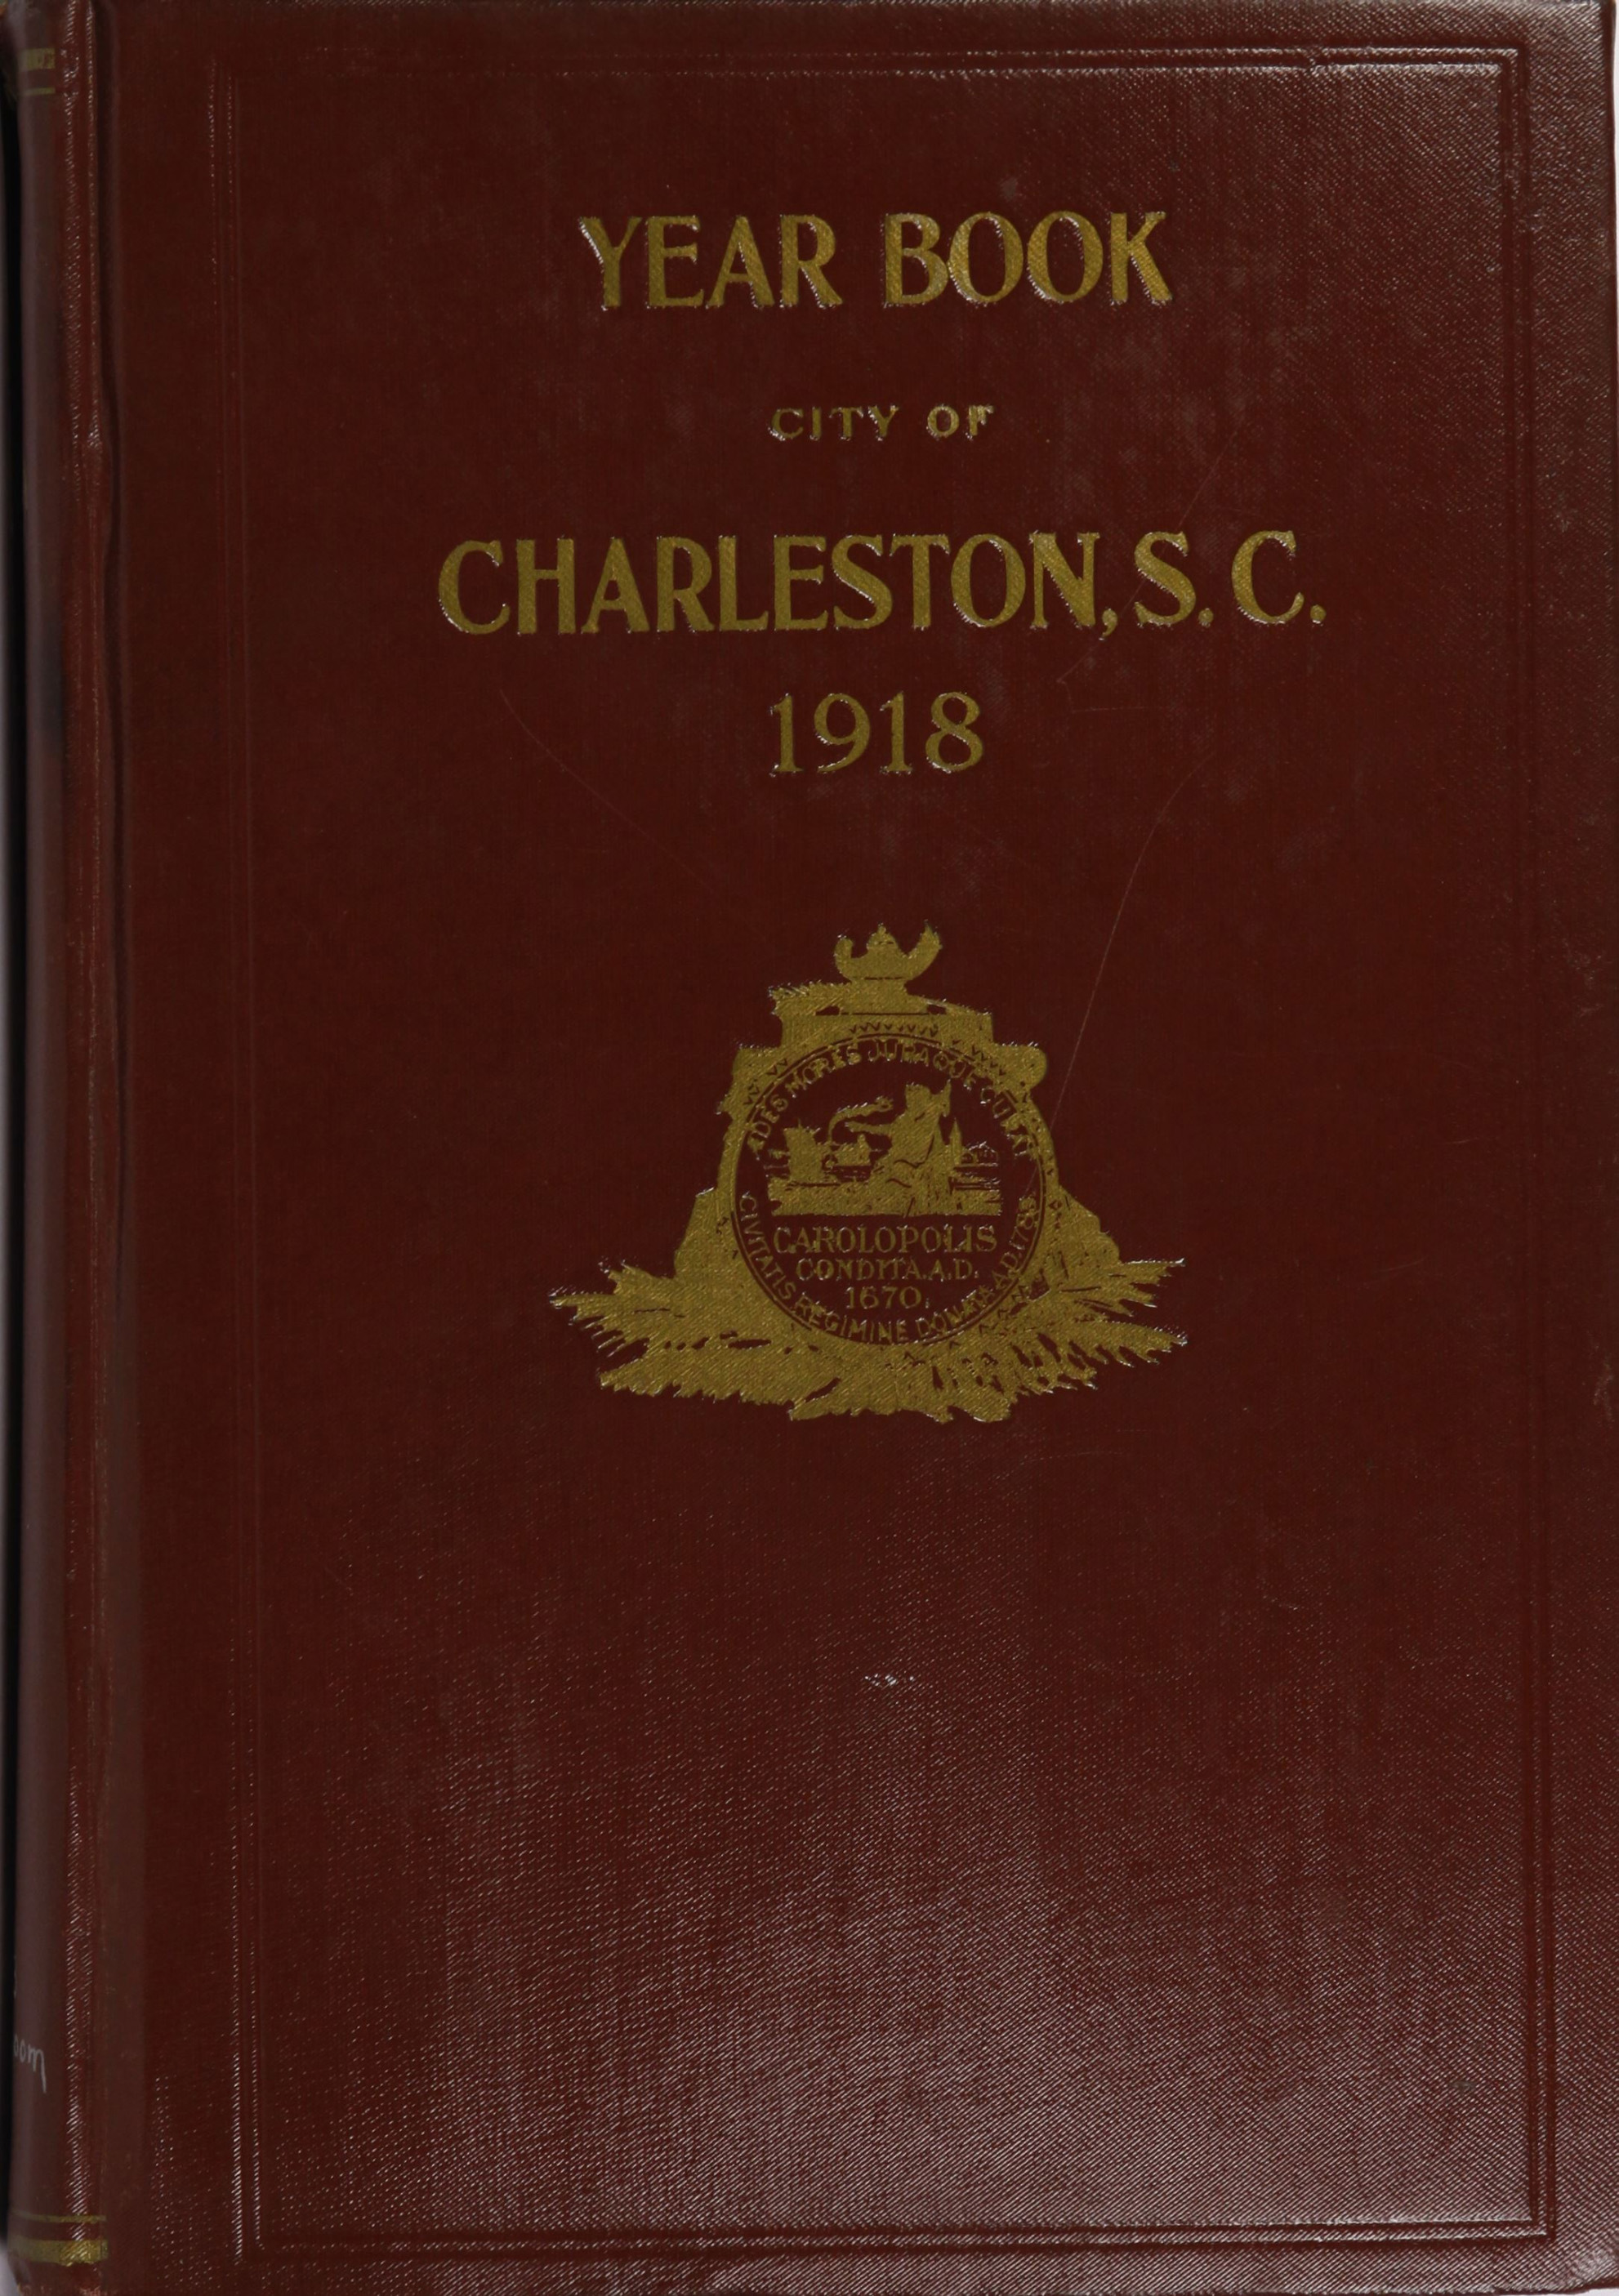 Charleston Yearbook, 1918, cover